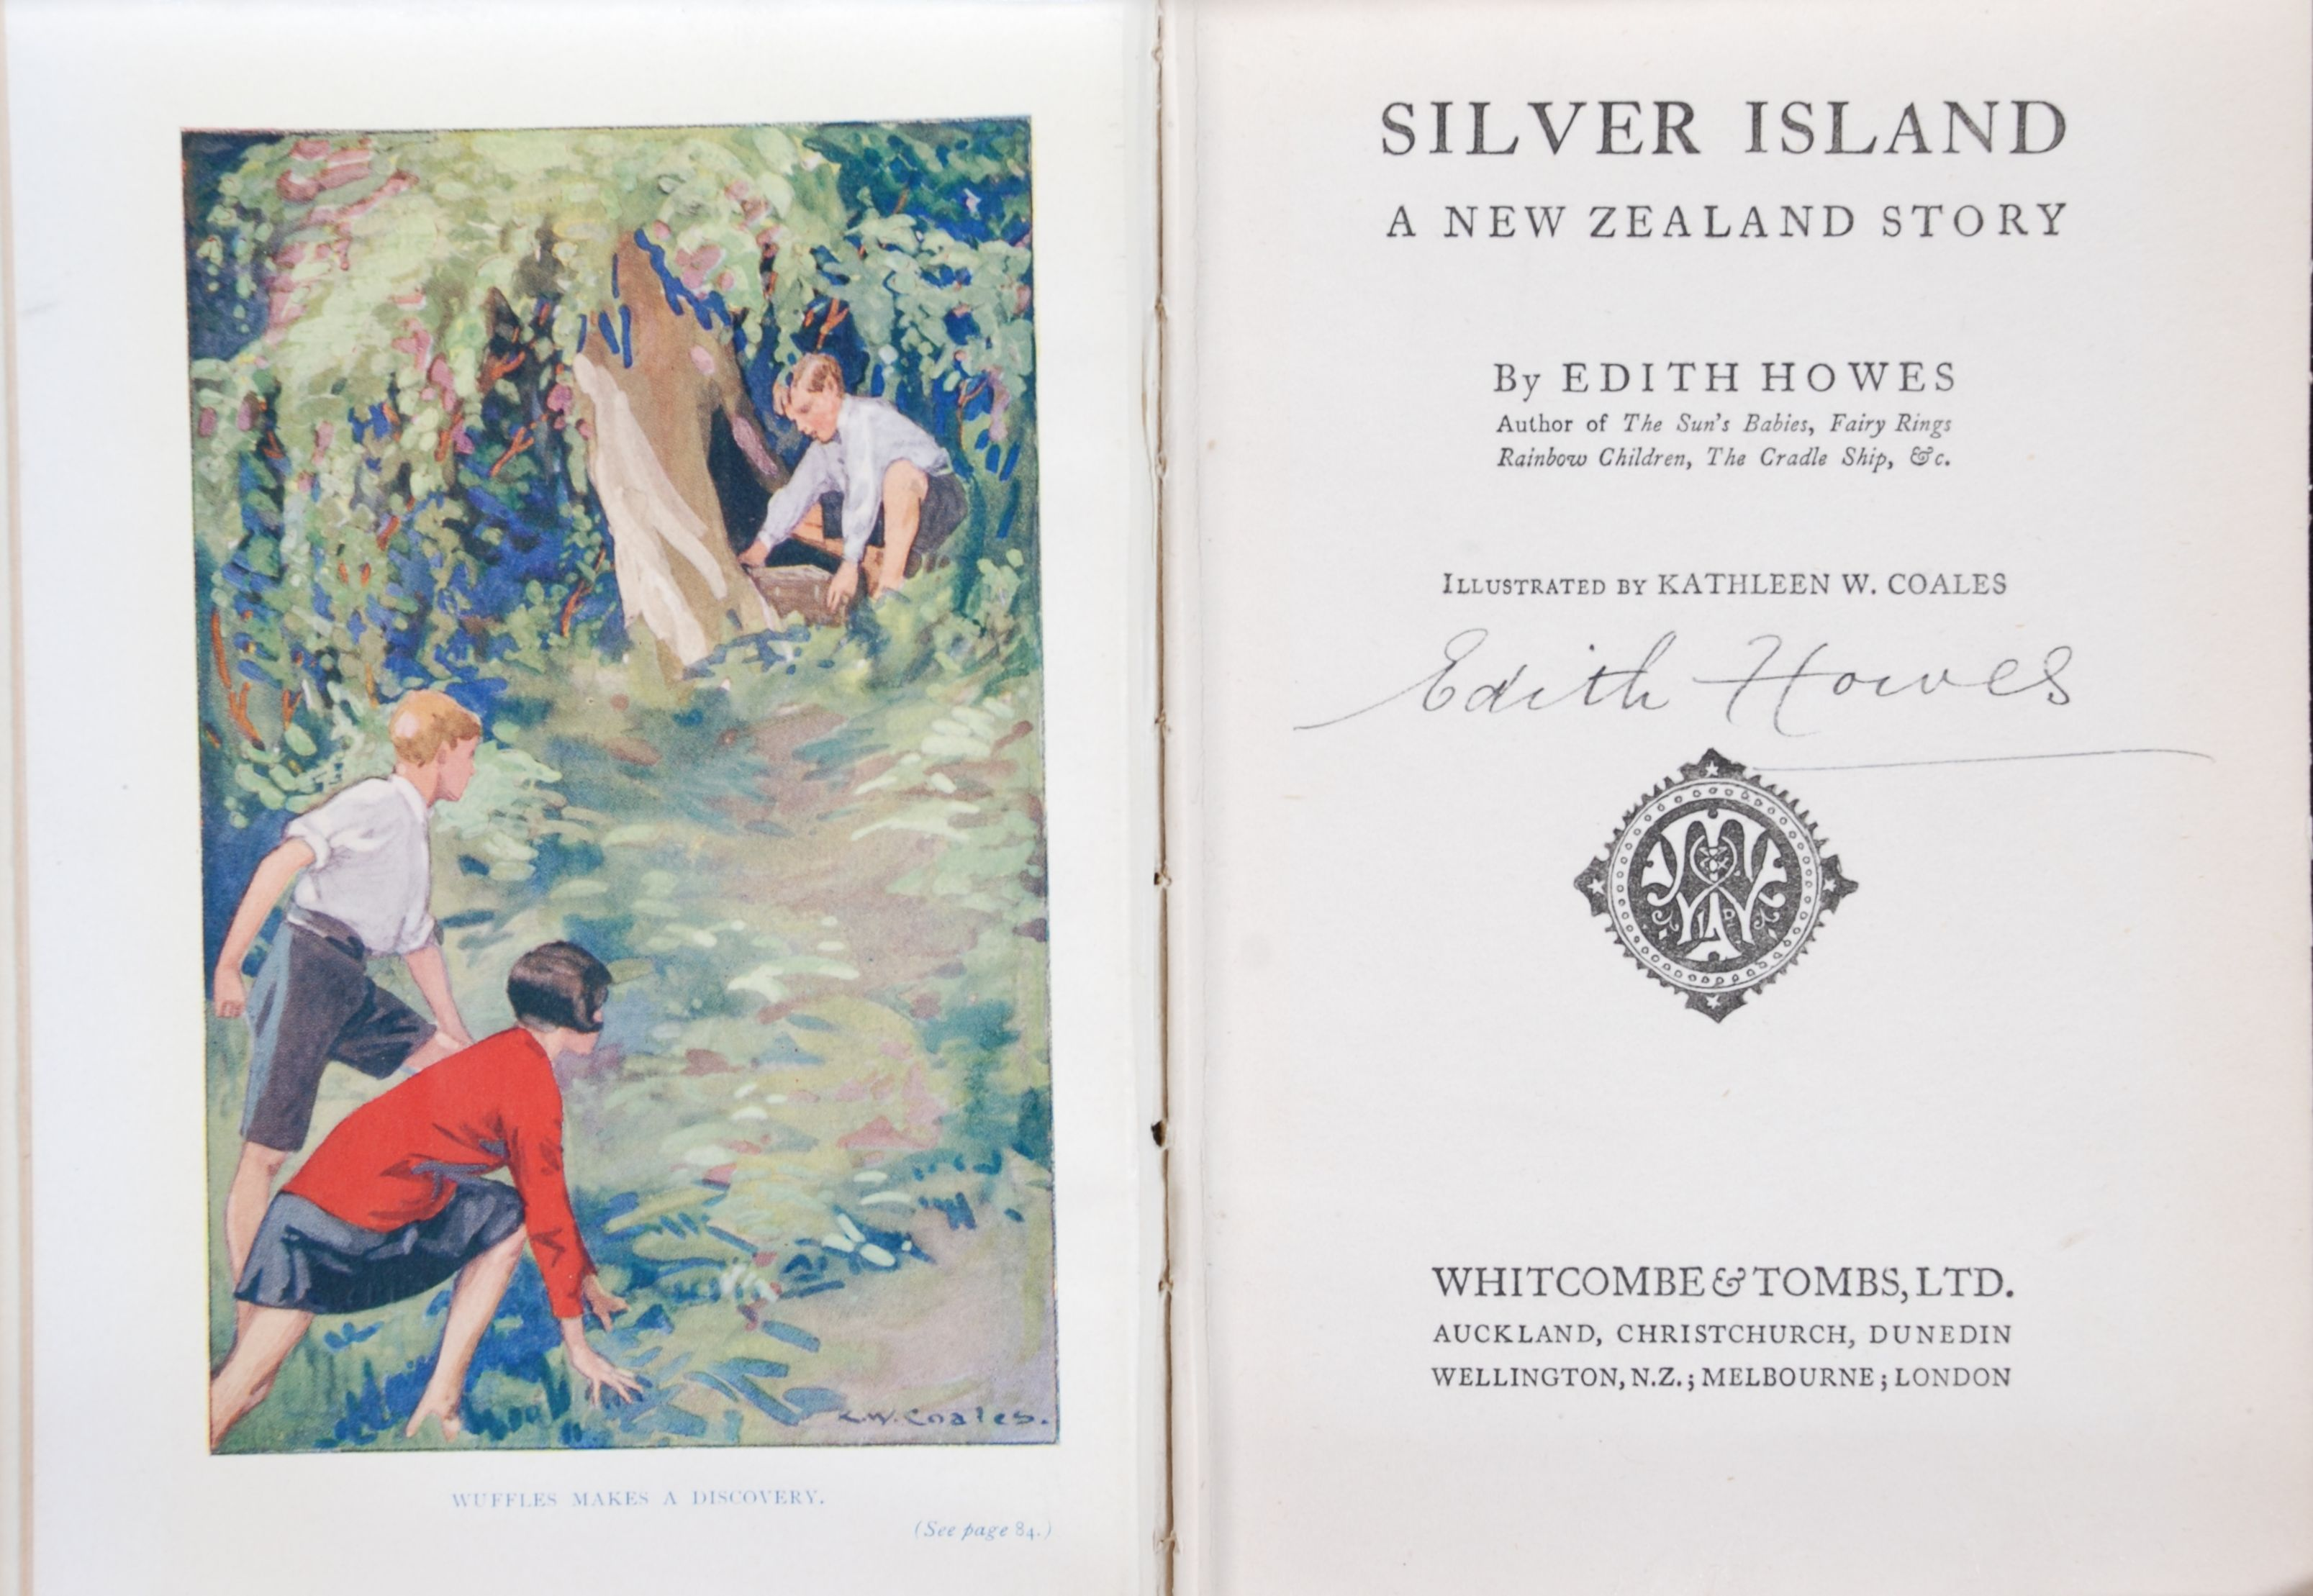 Edith Howes. Silver Island : a New Zealand story. Auckland, N.Z.: Whitcombe & Tombs, 1928.